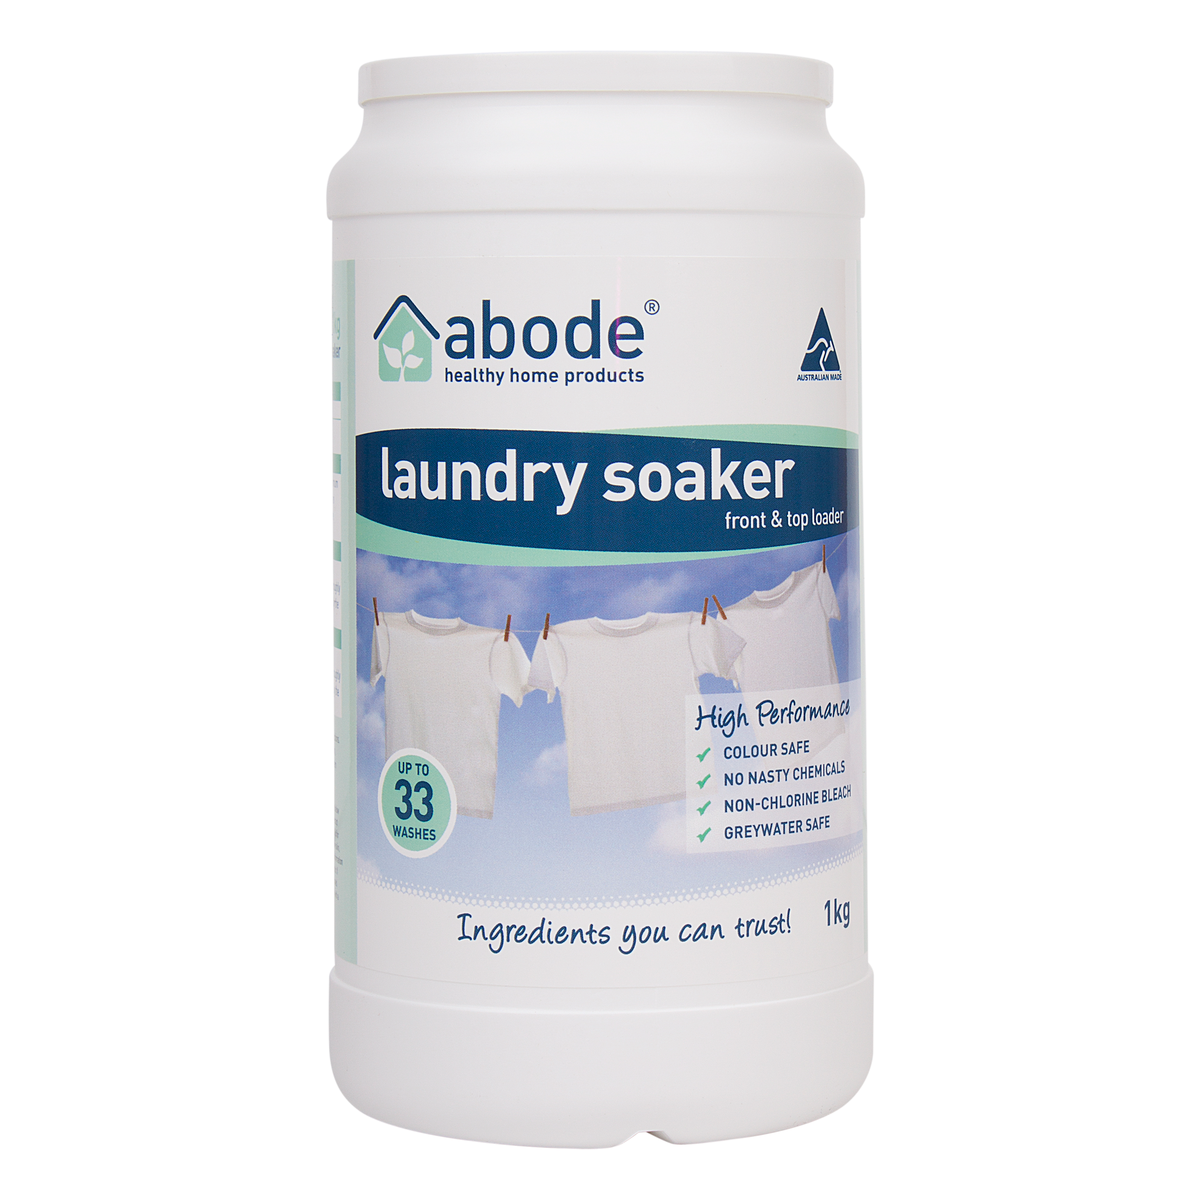 Abode Laundry Soaker High Performance (1kg)